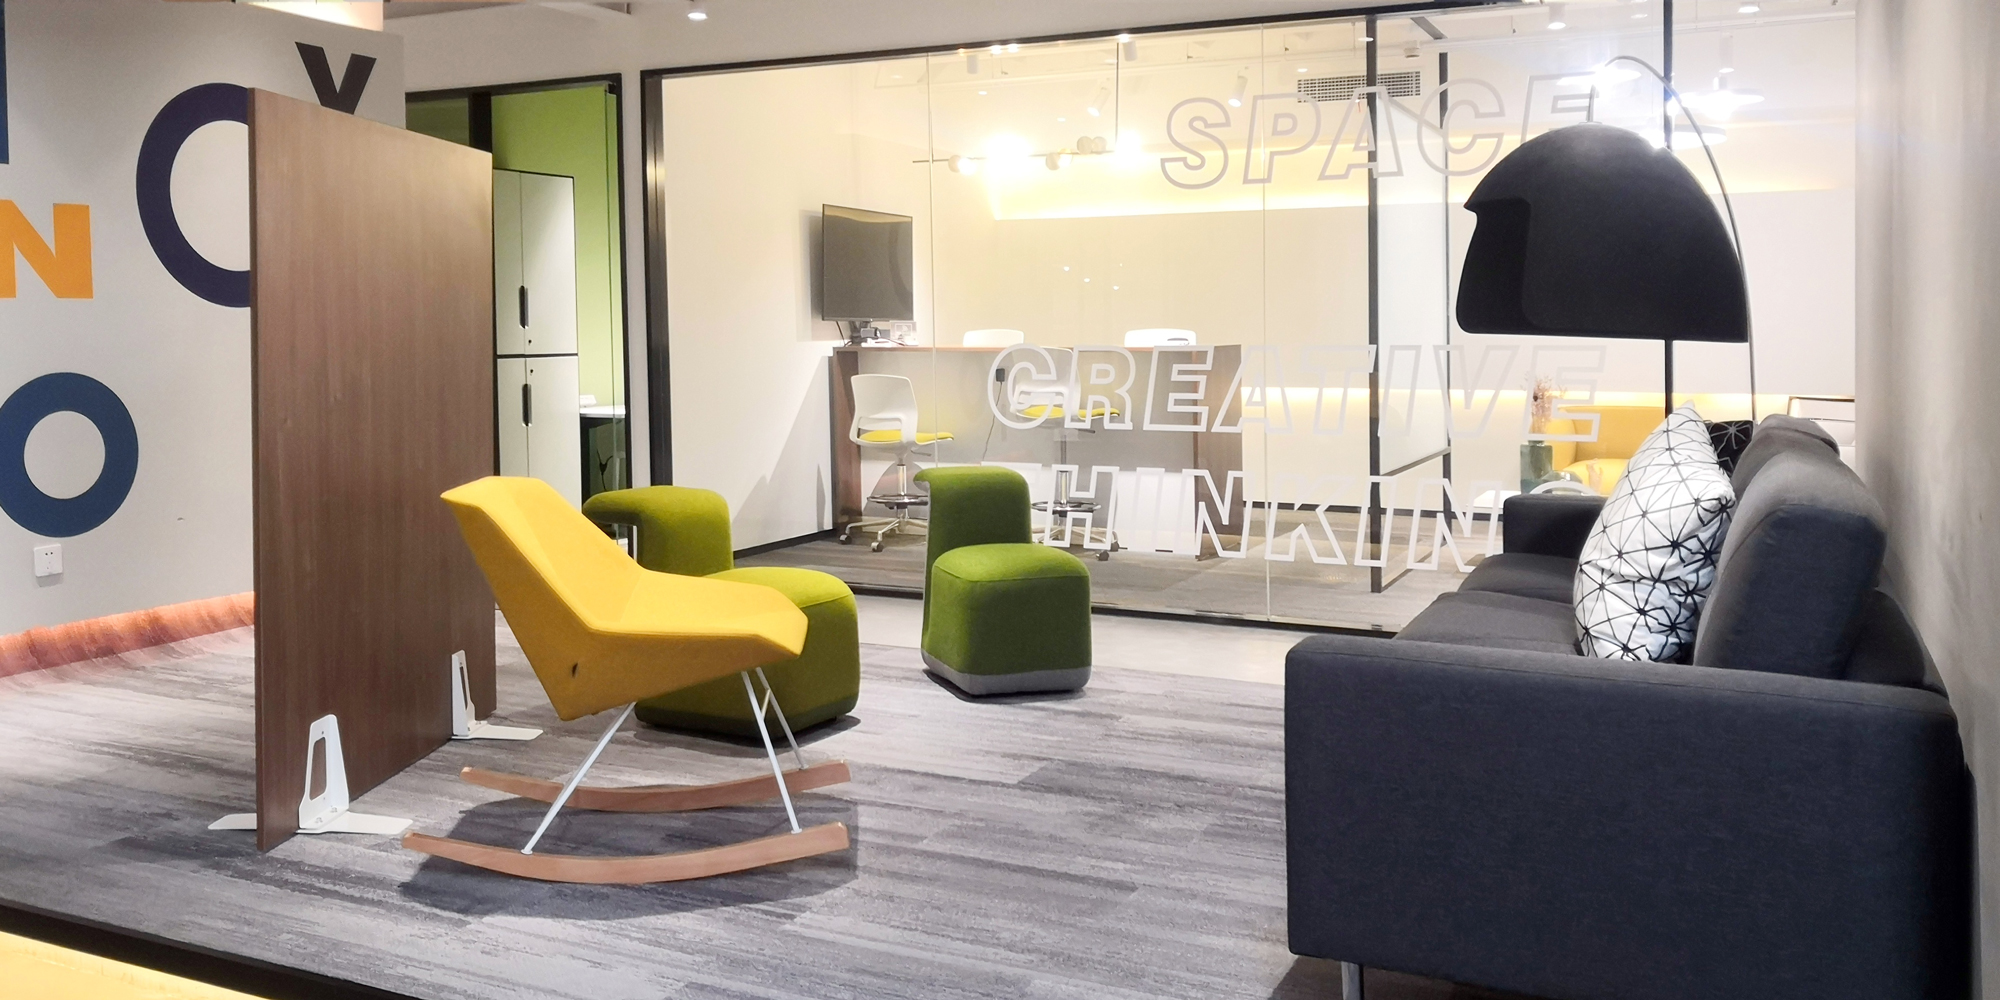 Image showcases Friant Shield panel creating space in a waiting area